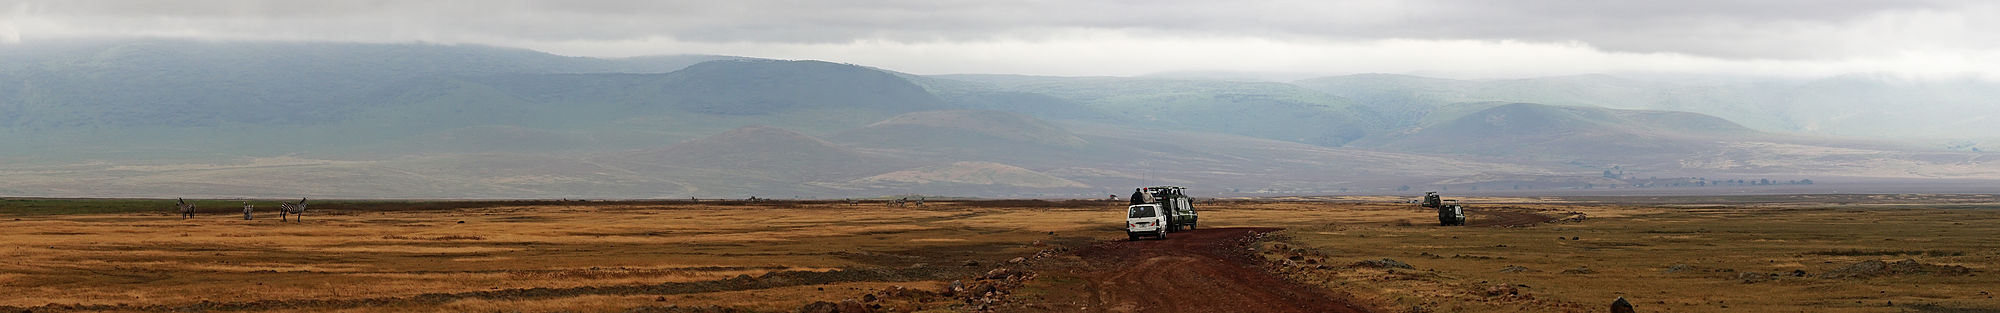 Inside Ngorongoro crater.jpg